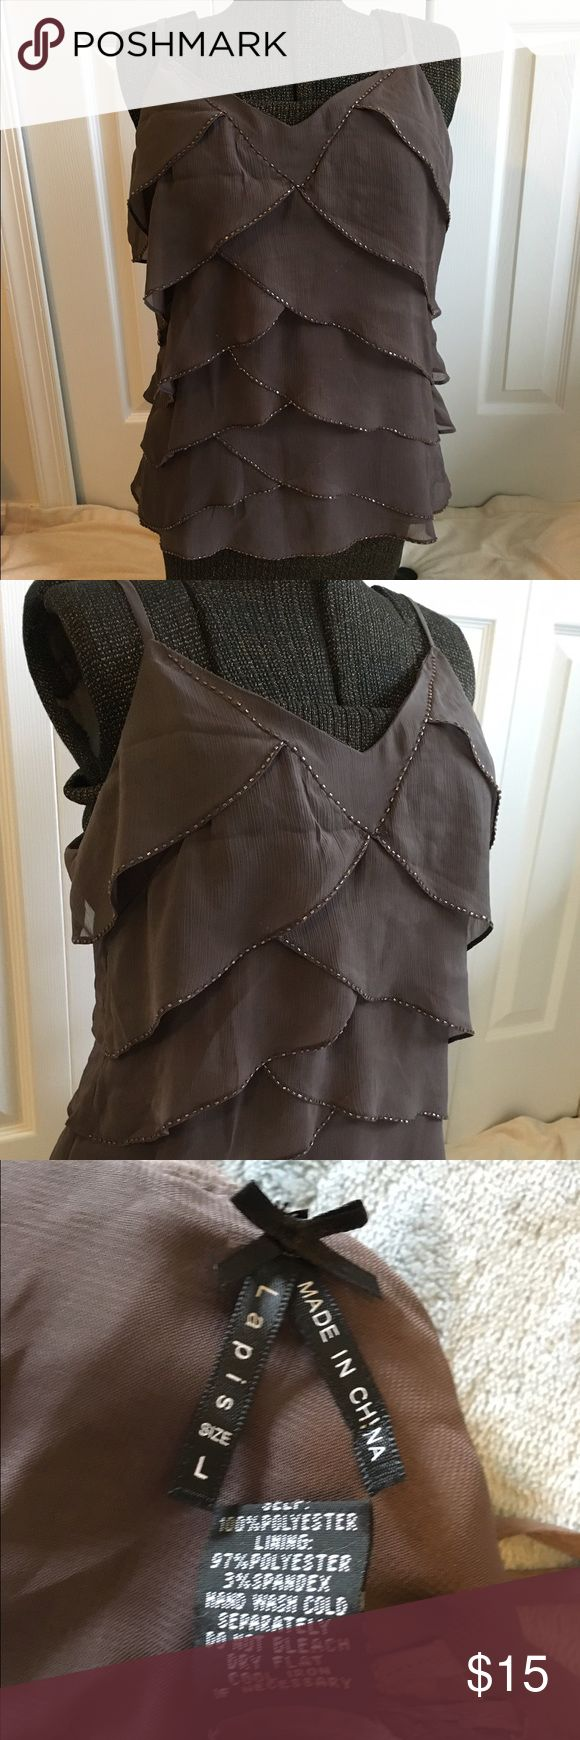 Dressy and elegant spaghetti top, brown Elegant ruffle spaghetti style dress top, brown, with brown beads on ruffles, never worn Lapis Tops